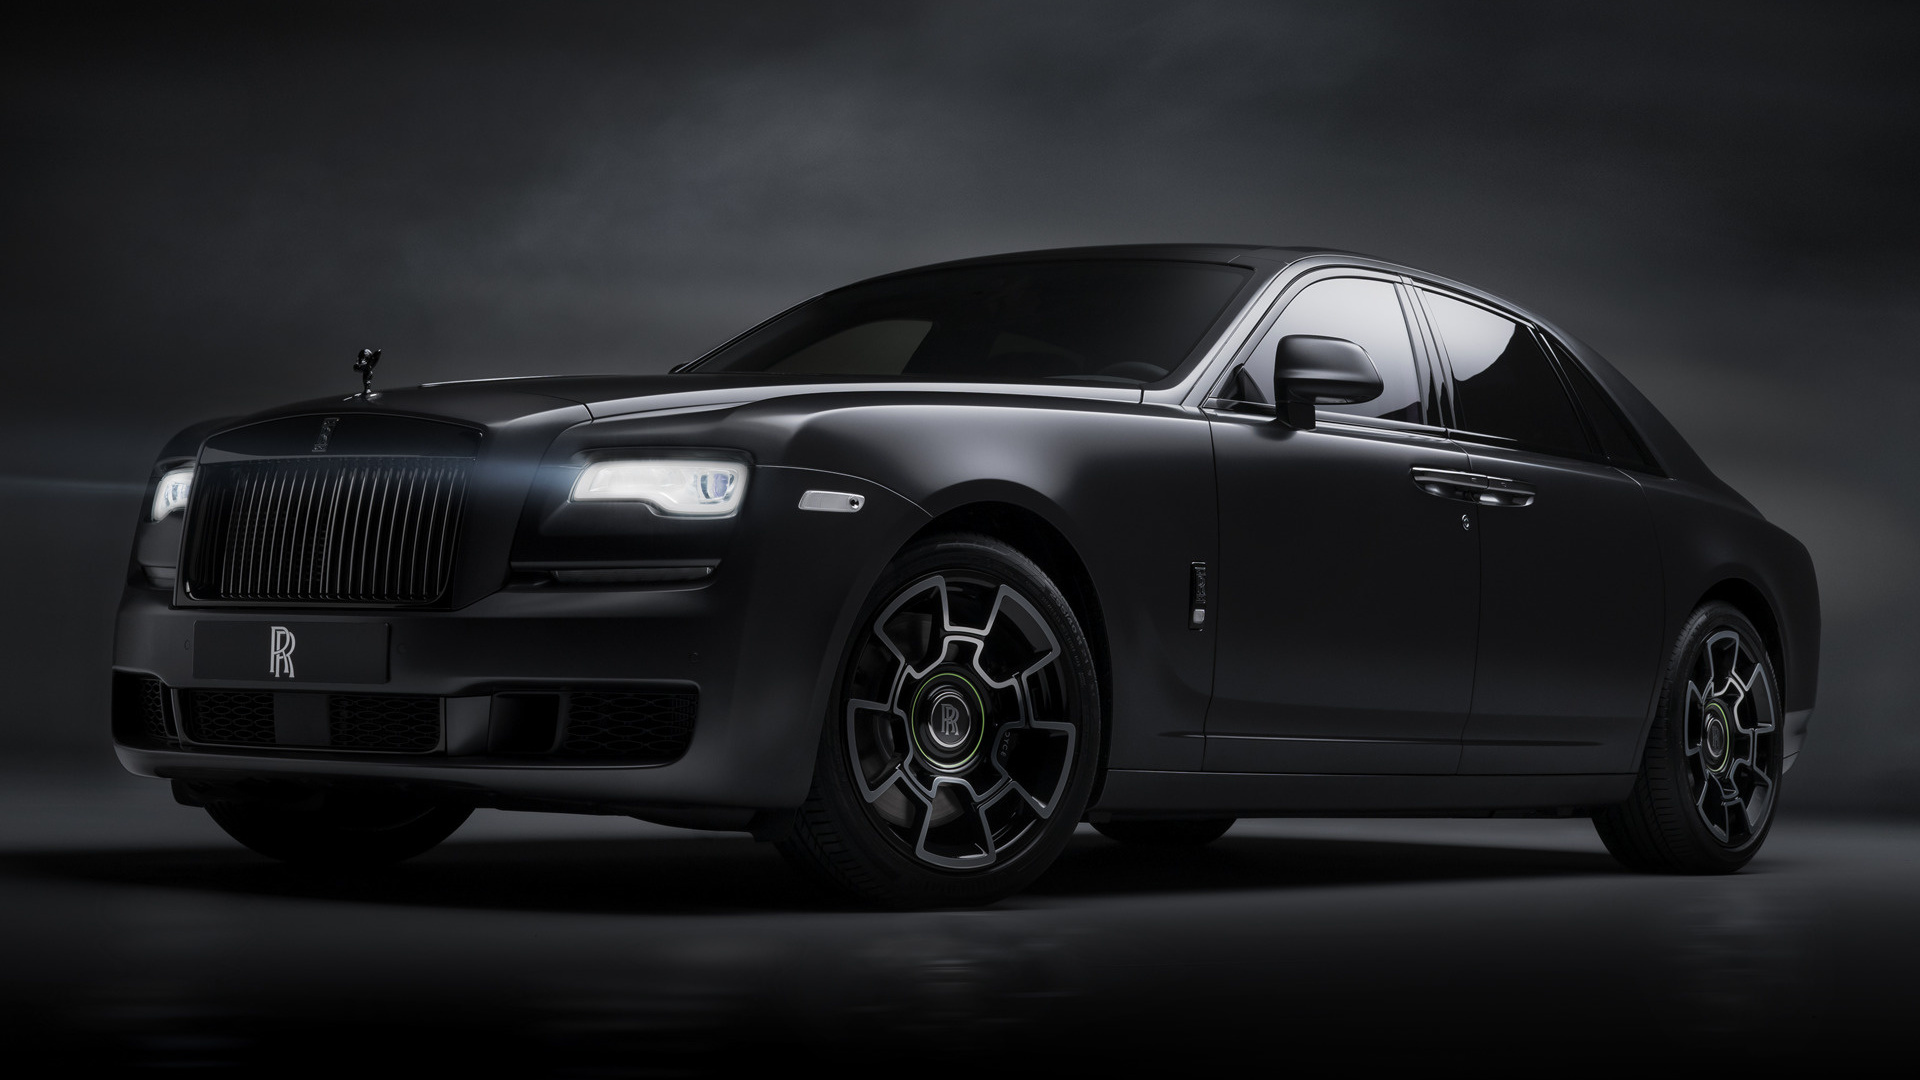 2019 Rolls-Royce Ghost Black Badge - Wallpapers and HD ...